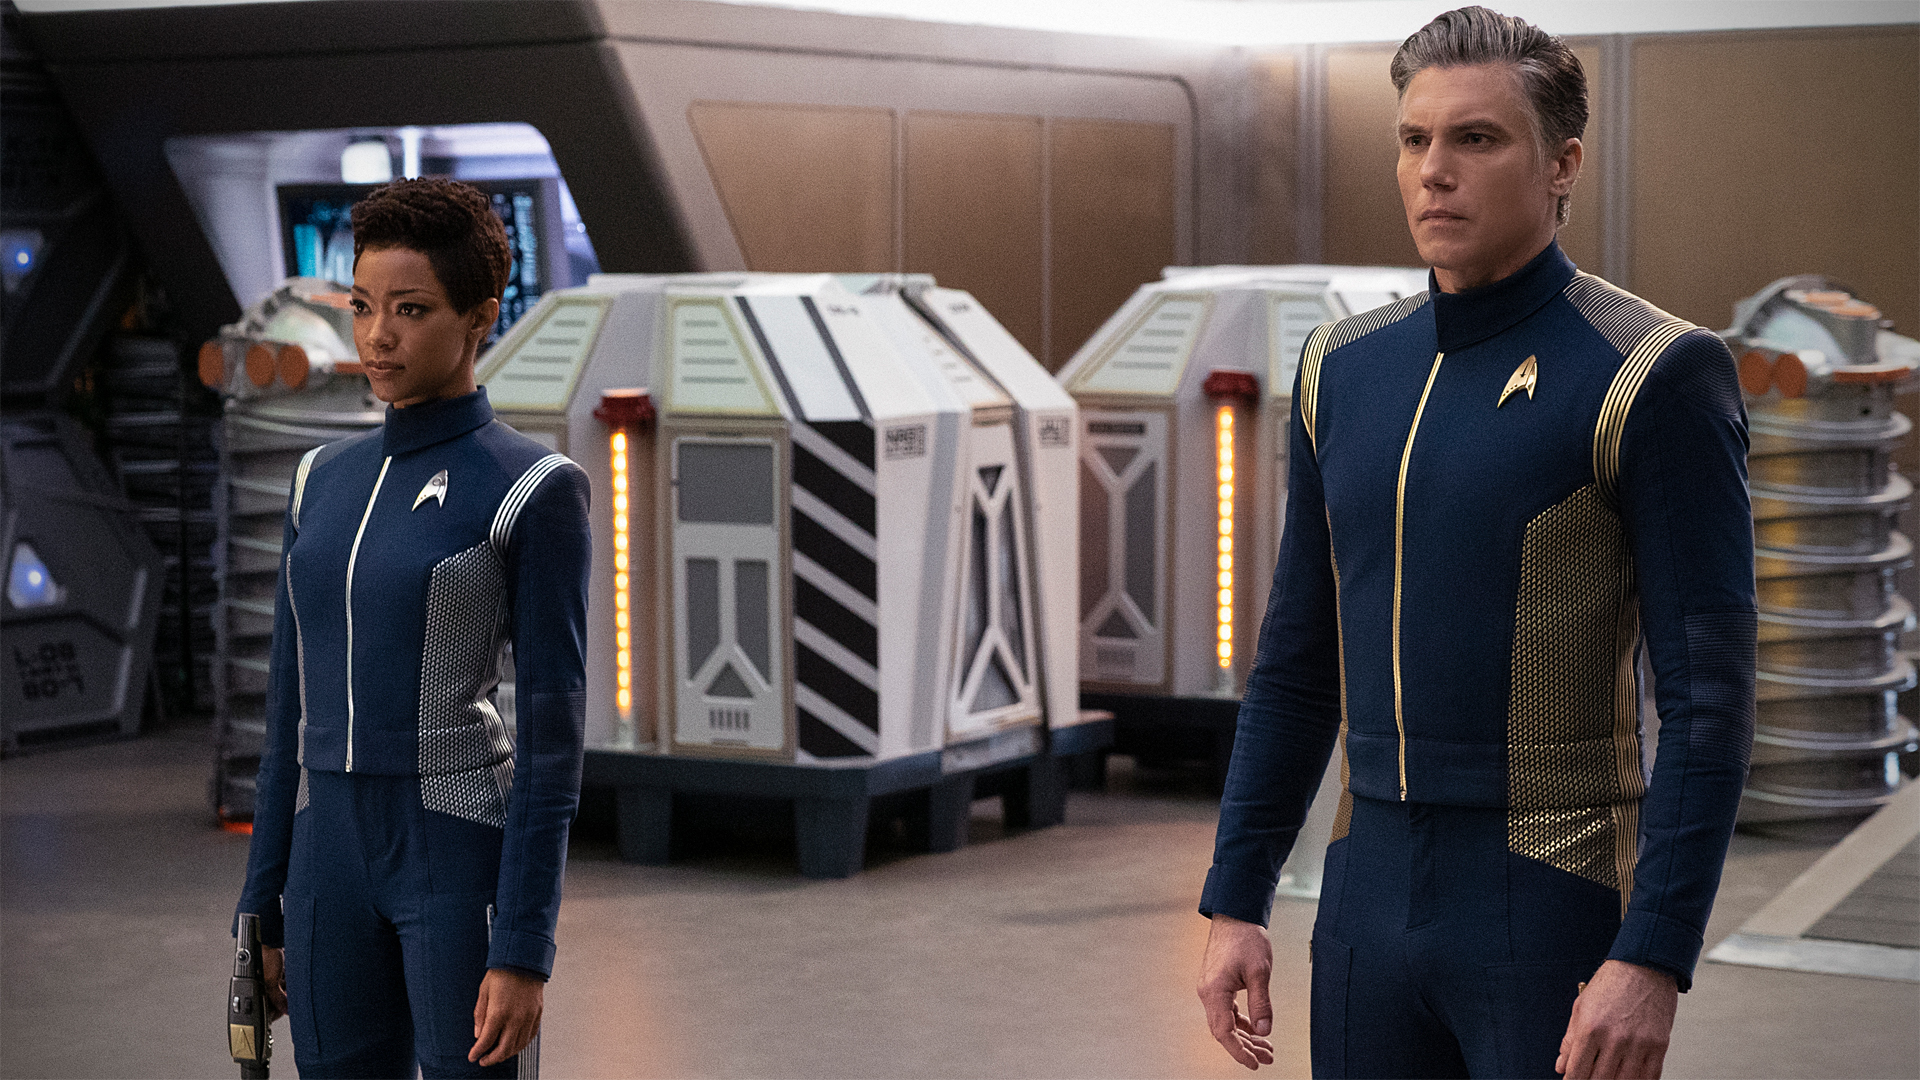 Star Trek: Strange New Worlds: release date, cast and what we know